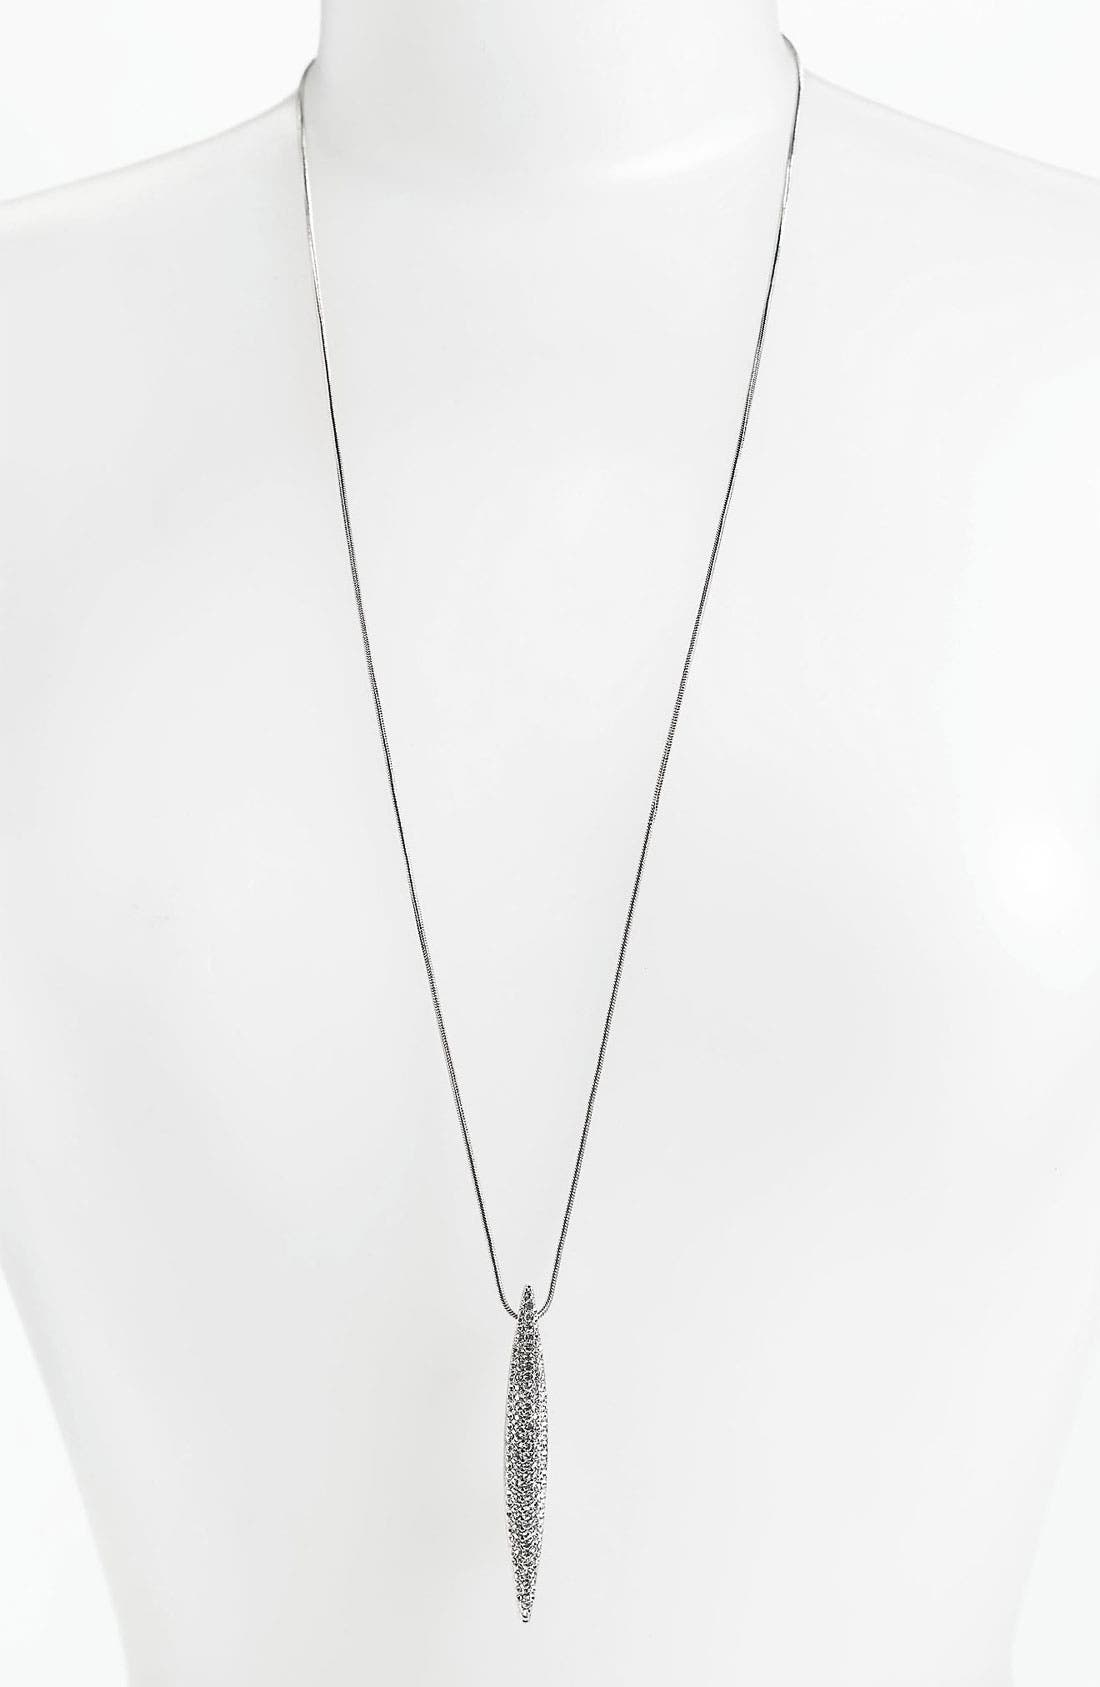 Alternate Image 1 Selected - Vince Camuto Spear Pendant Necklace